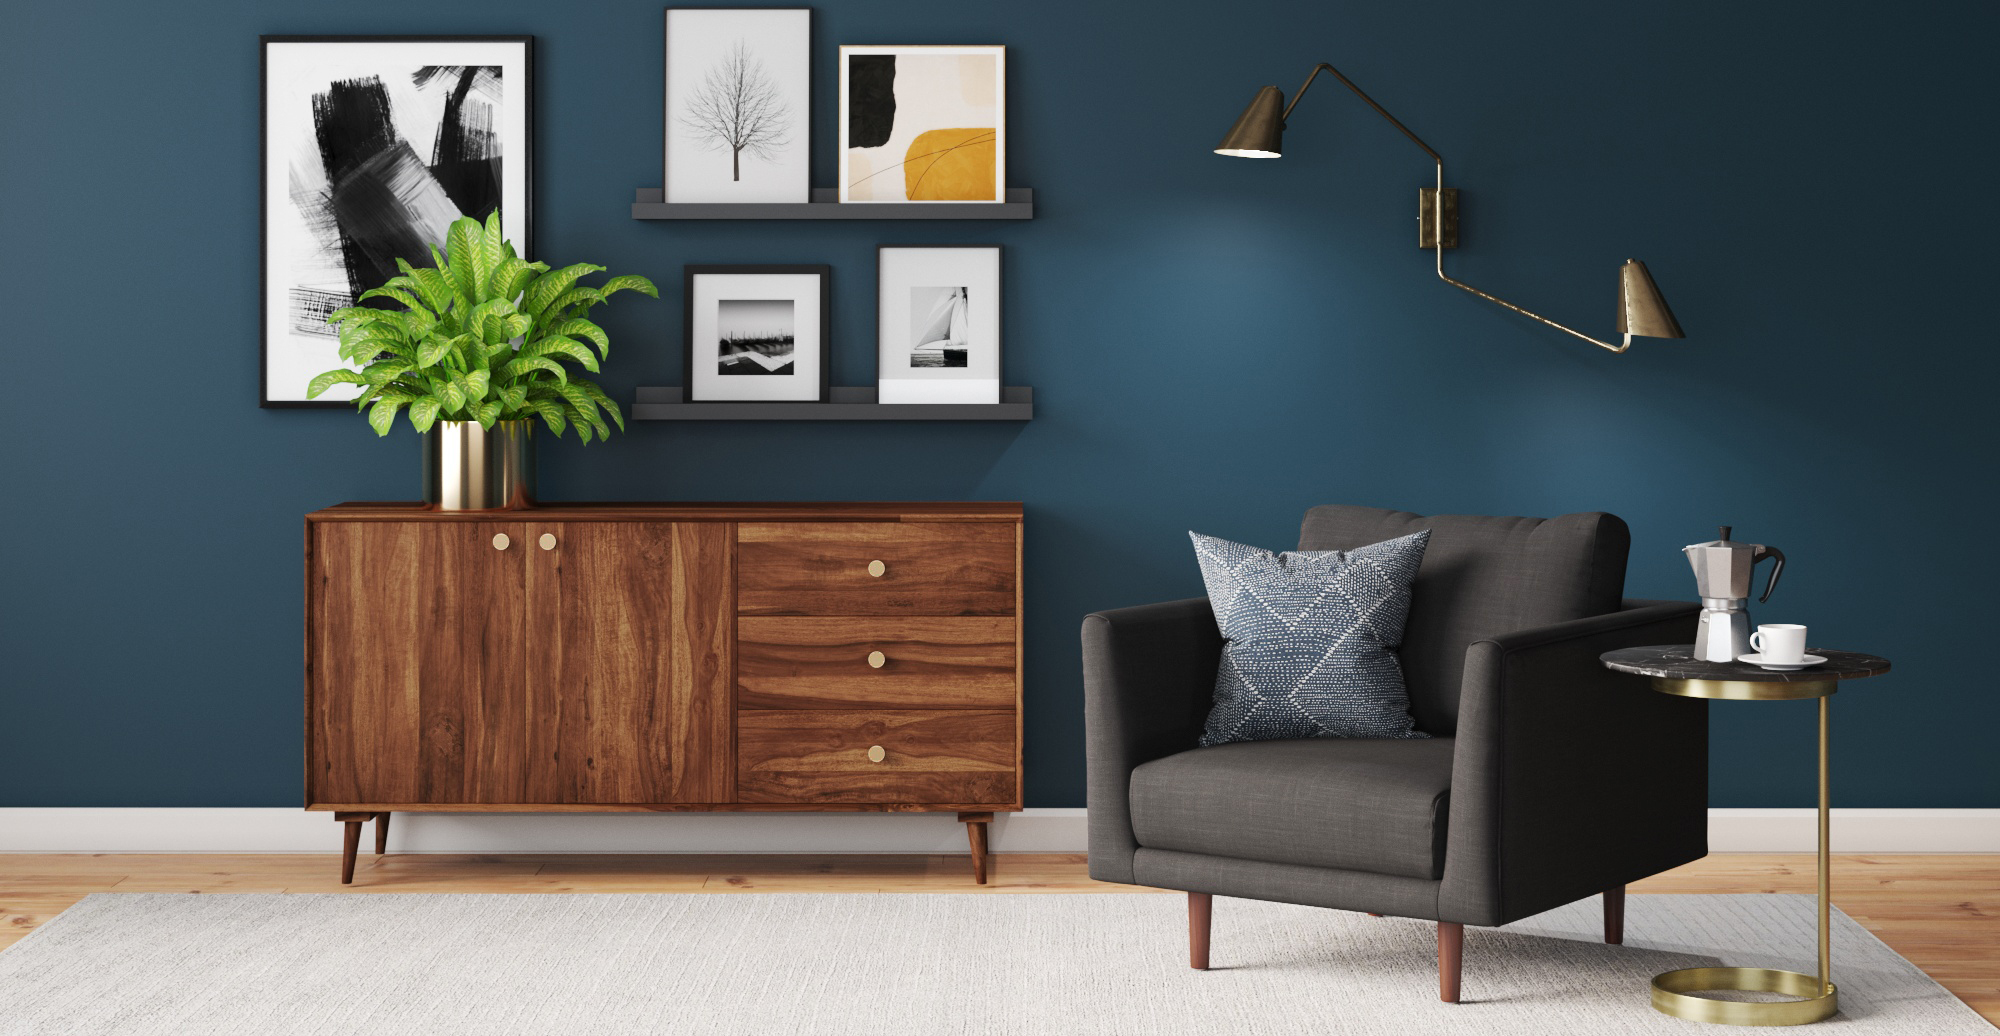 Brosa Cushla Side Table styled in modern contemporary living room